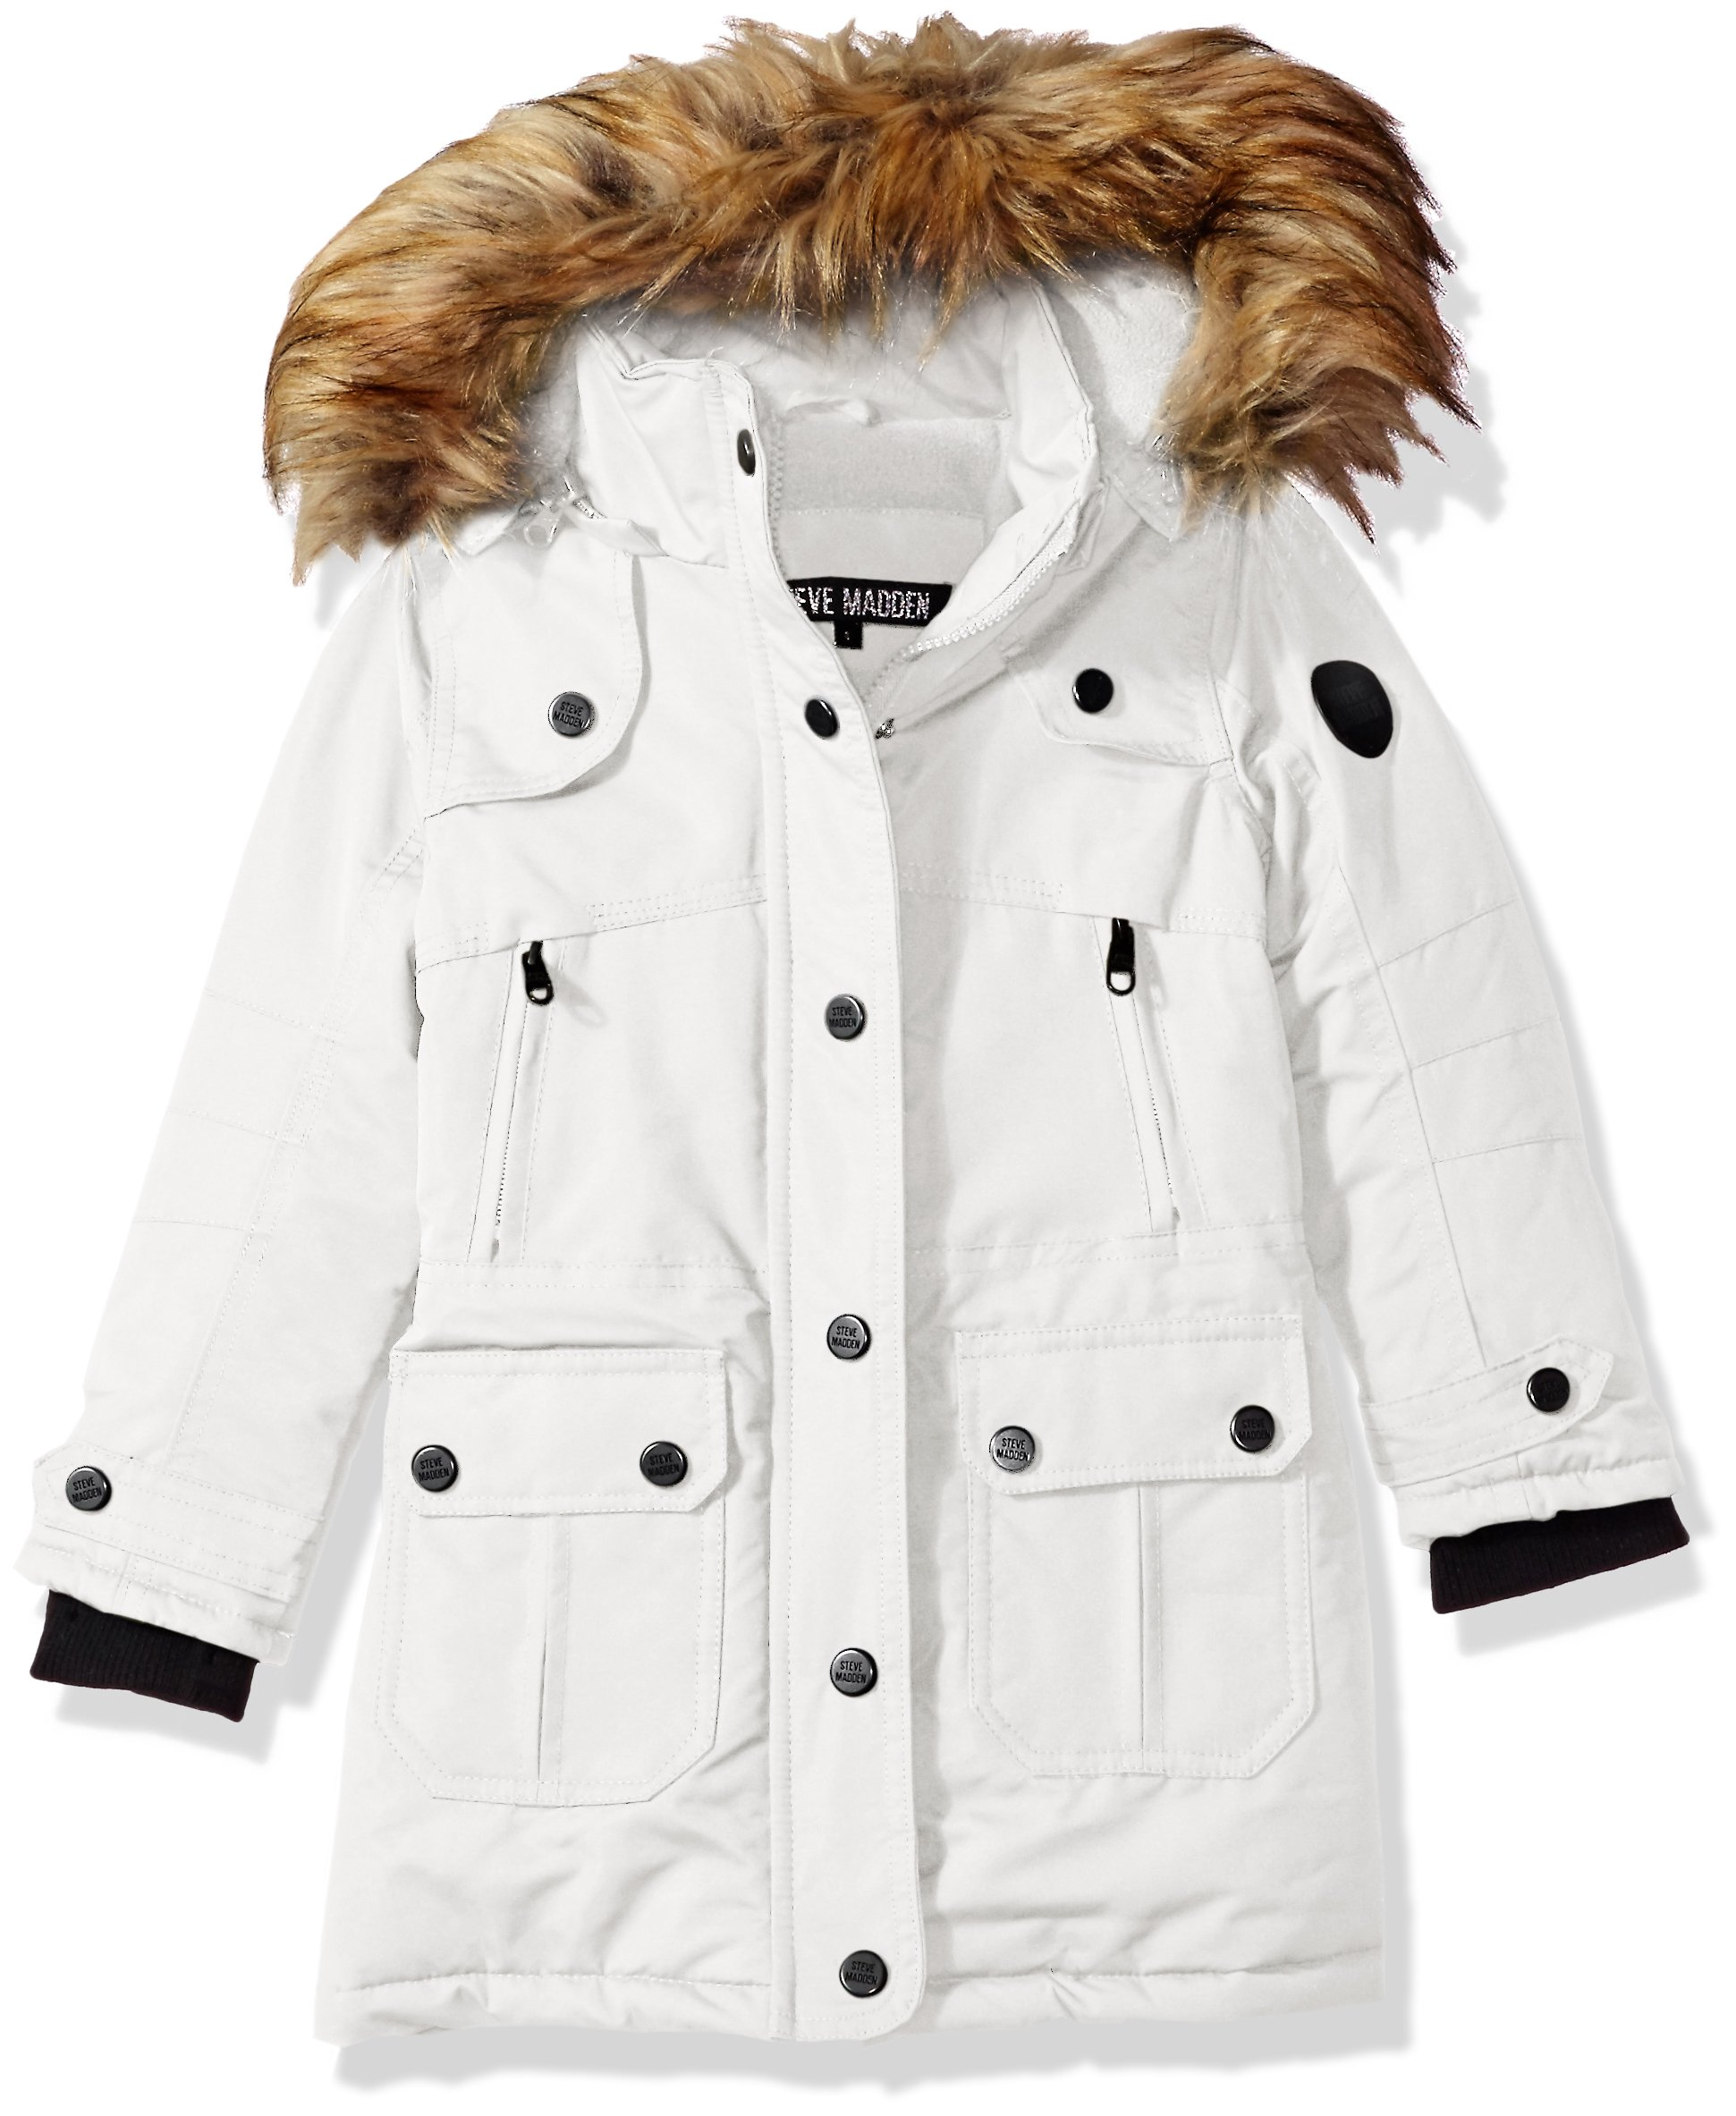 ae6aef9e987 Steve Madden Girls  Outerwear Jacket (More Styles Available ...